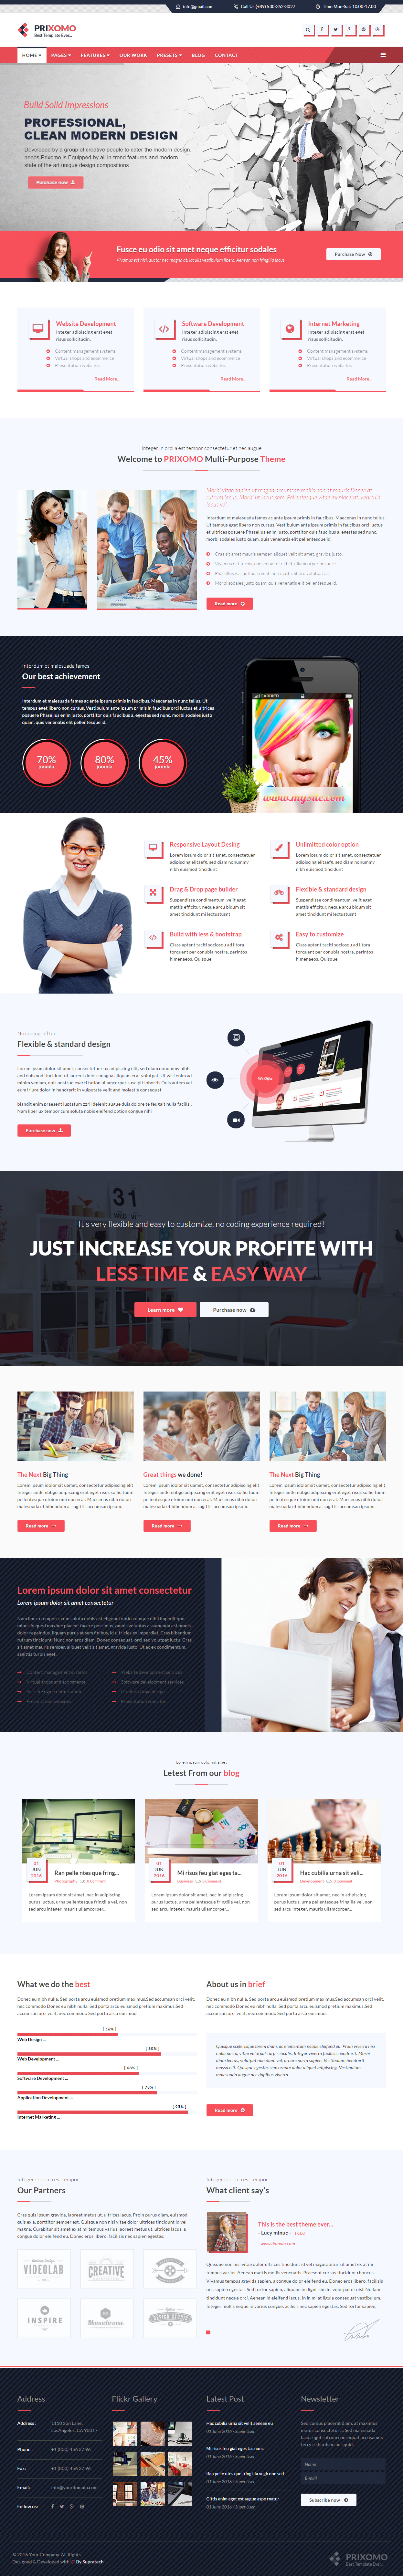 30 best joomla business templates 2017 responsive miracle prixomo joomla business templates friedricerecipe Choice Image